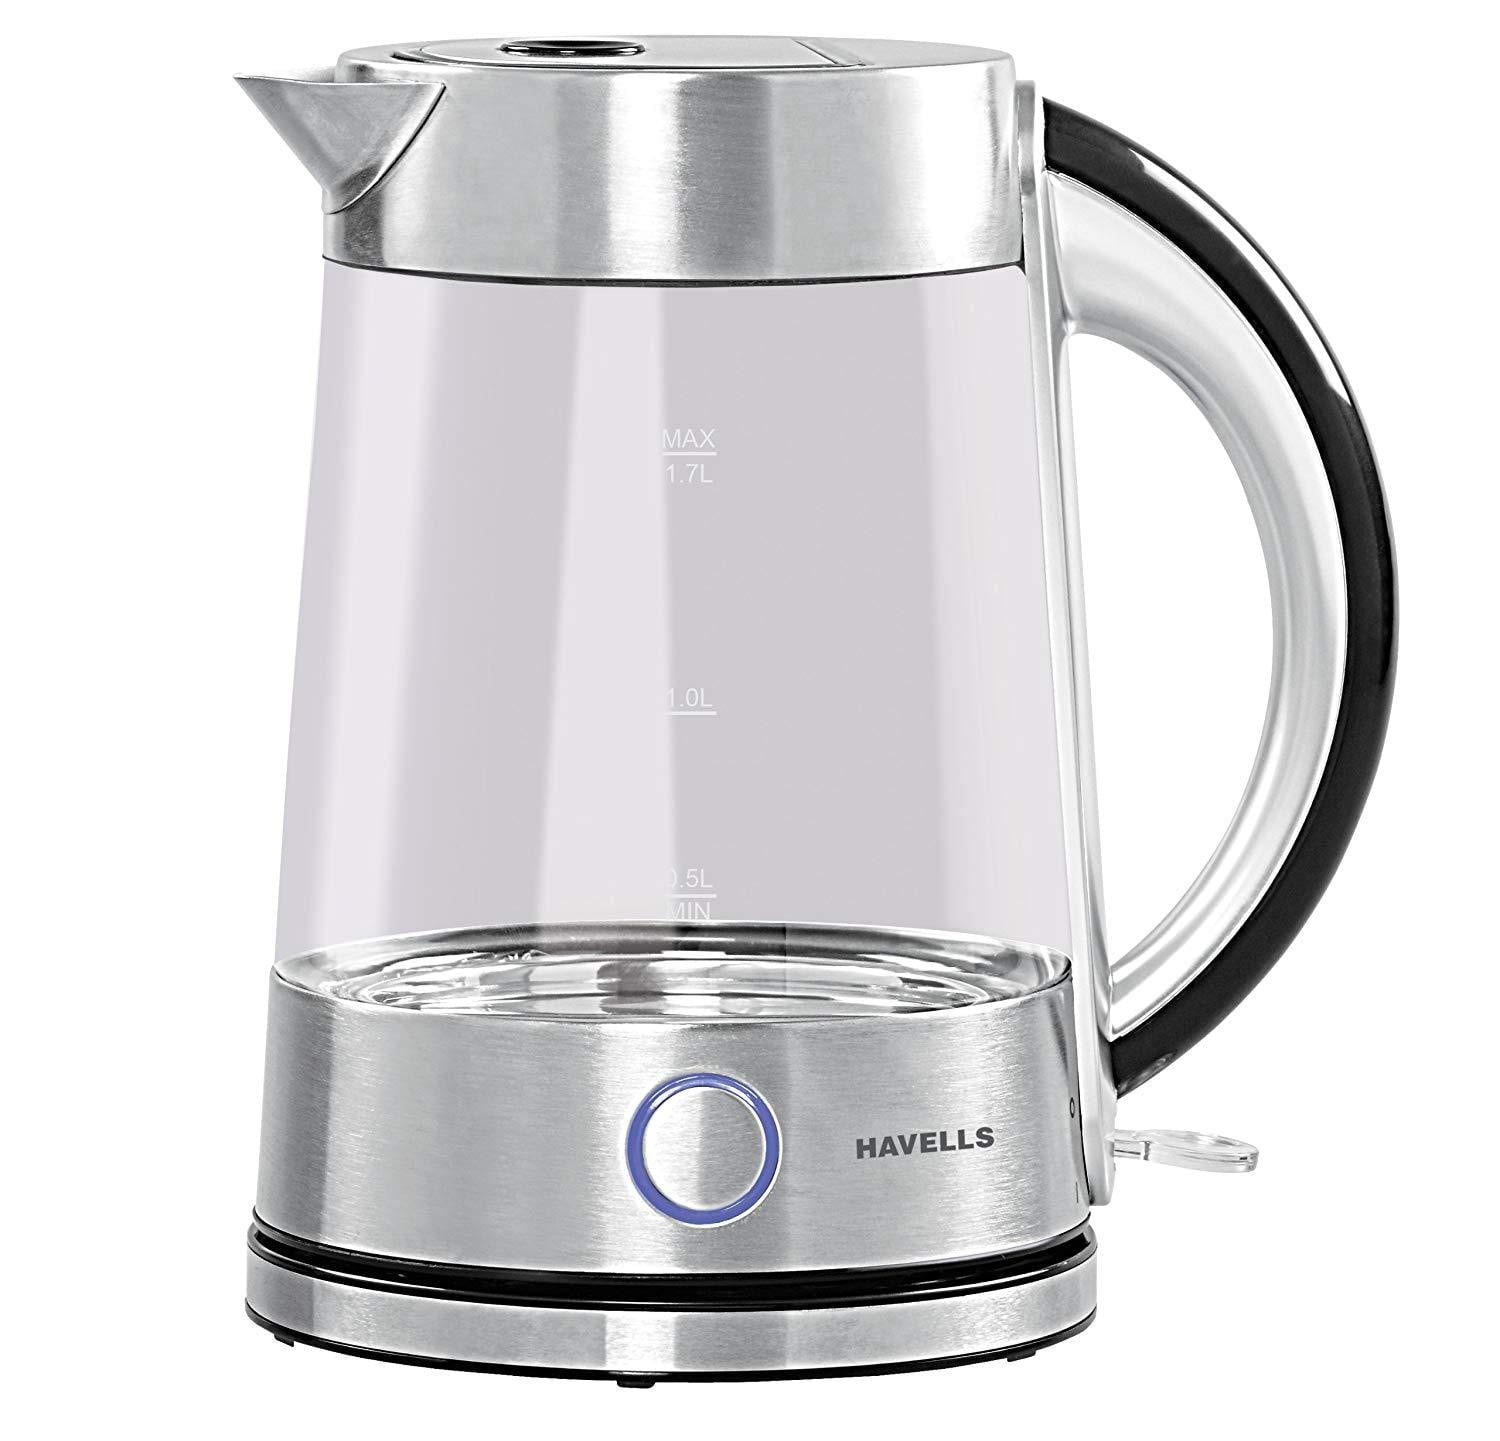 Havells Vetro 1.7L 2200-Watt Stainless Steel Kettle (Glass) - Buythevalue.in